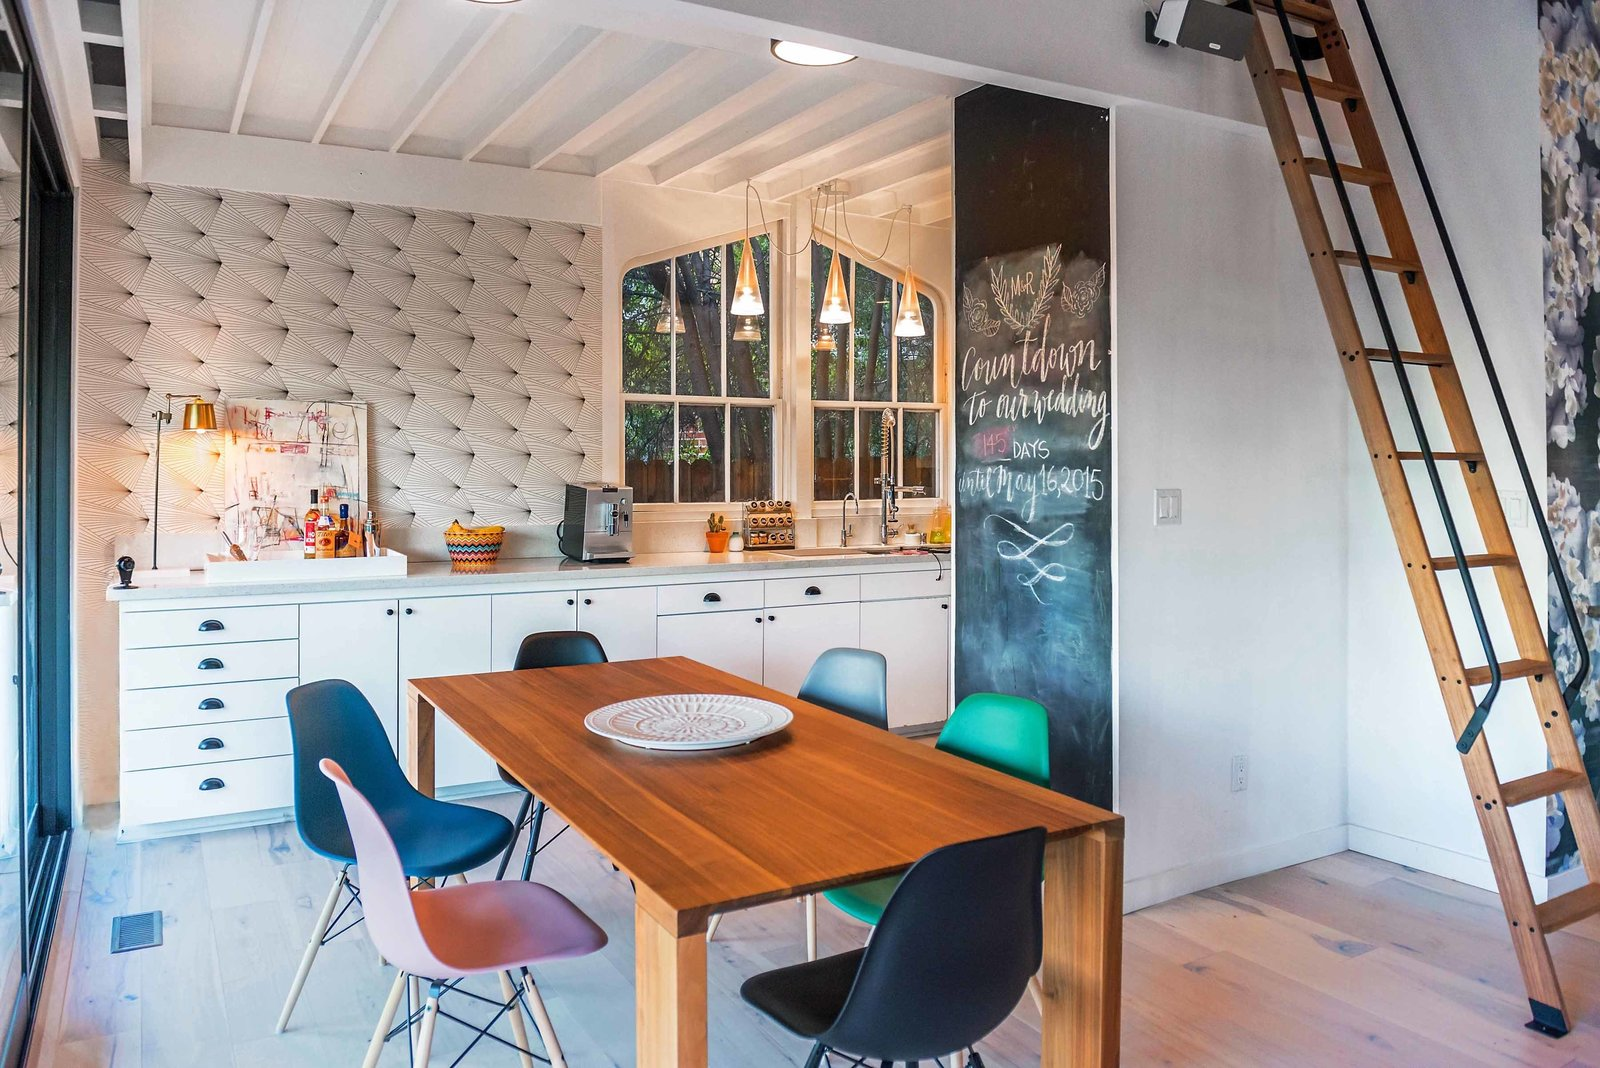 The kitchen is just as detailed and eclectic as the rest of the main floor, with a wall-sized chalkboard and retro wallpaper accenting the streamlined white cabinetry. Bright, colorful dining room chairs add whimsy.  Photo 10 of 42 in Wallpaper That Fixes Walls